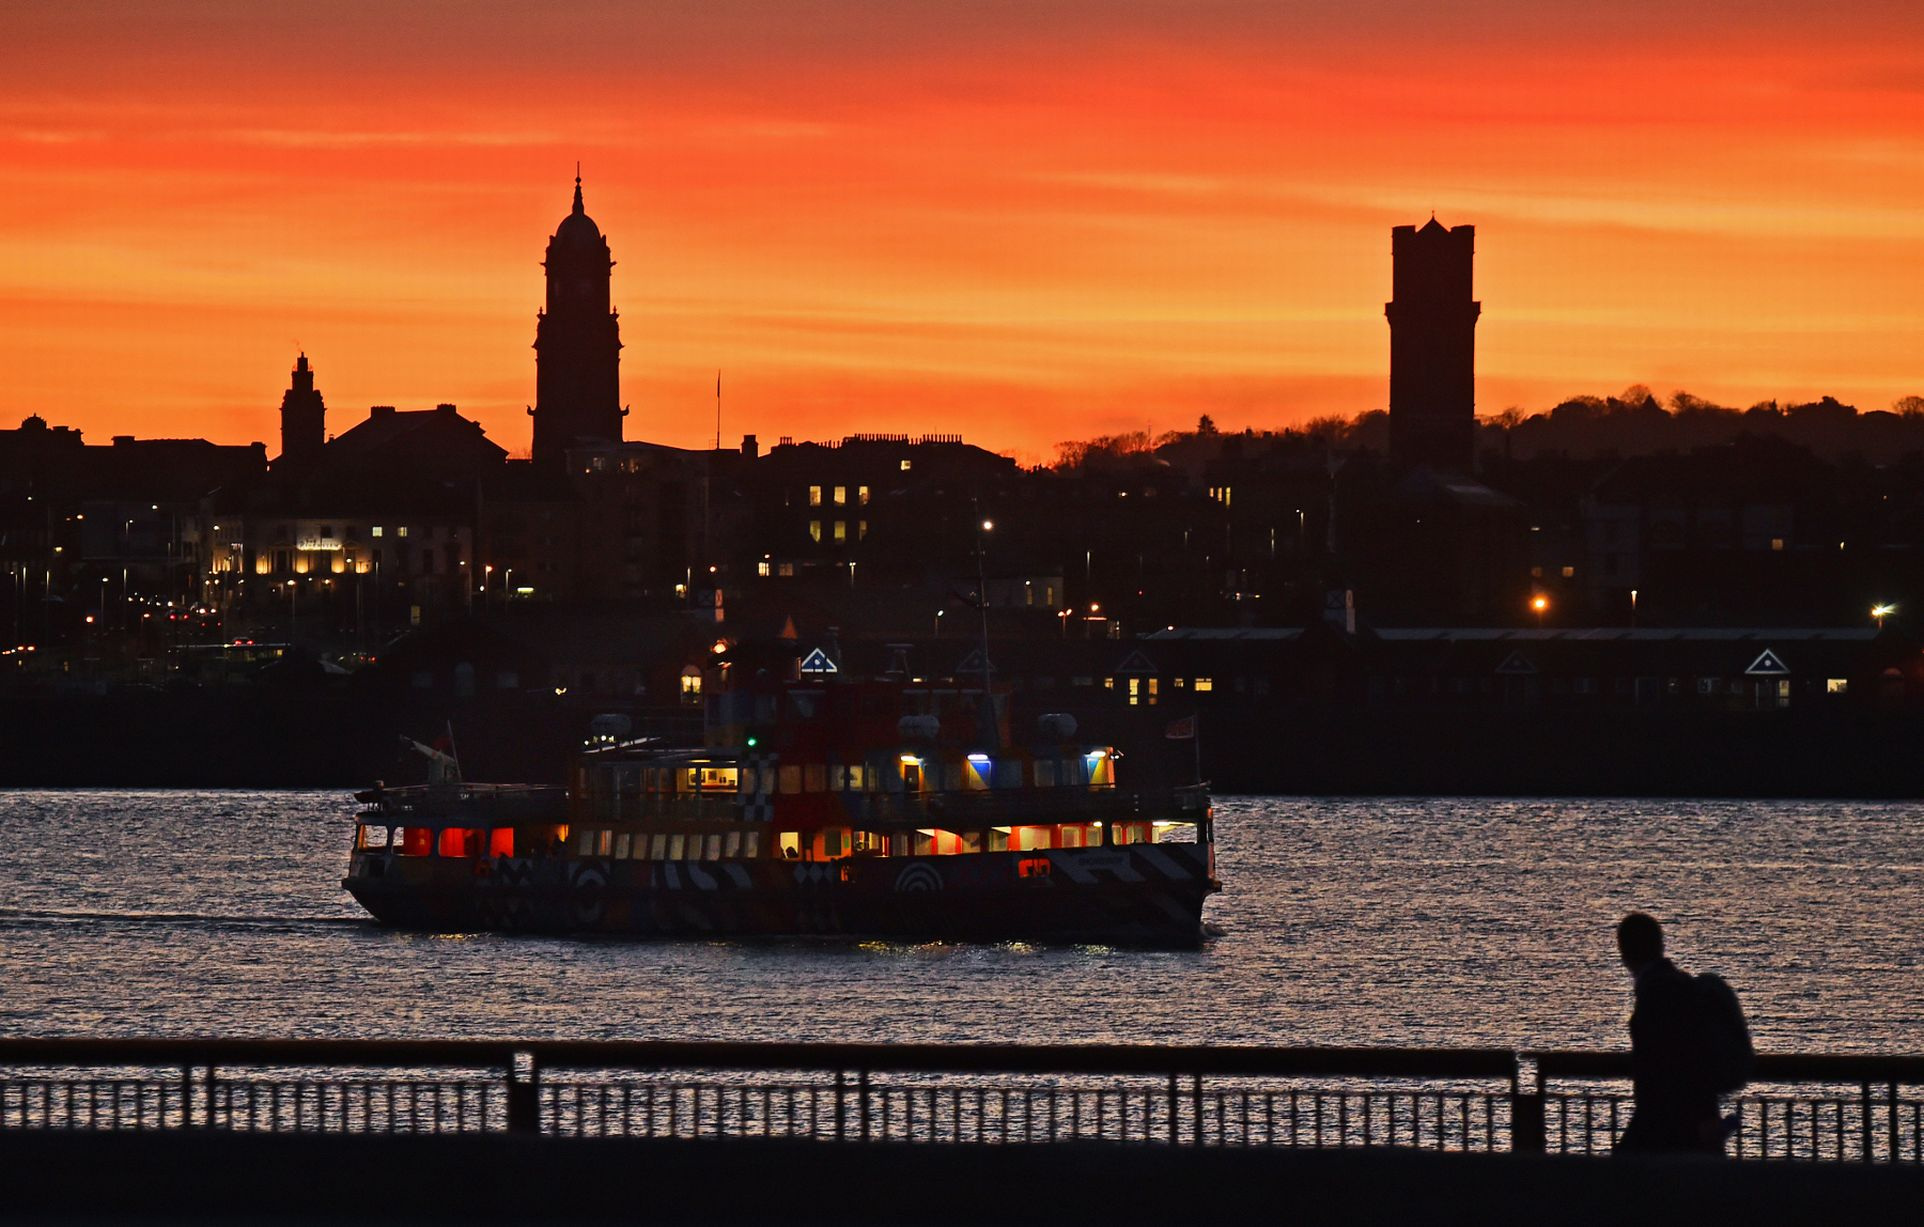 Tramonto sul Mersey a Liverpool